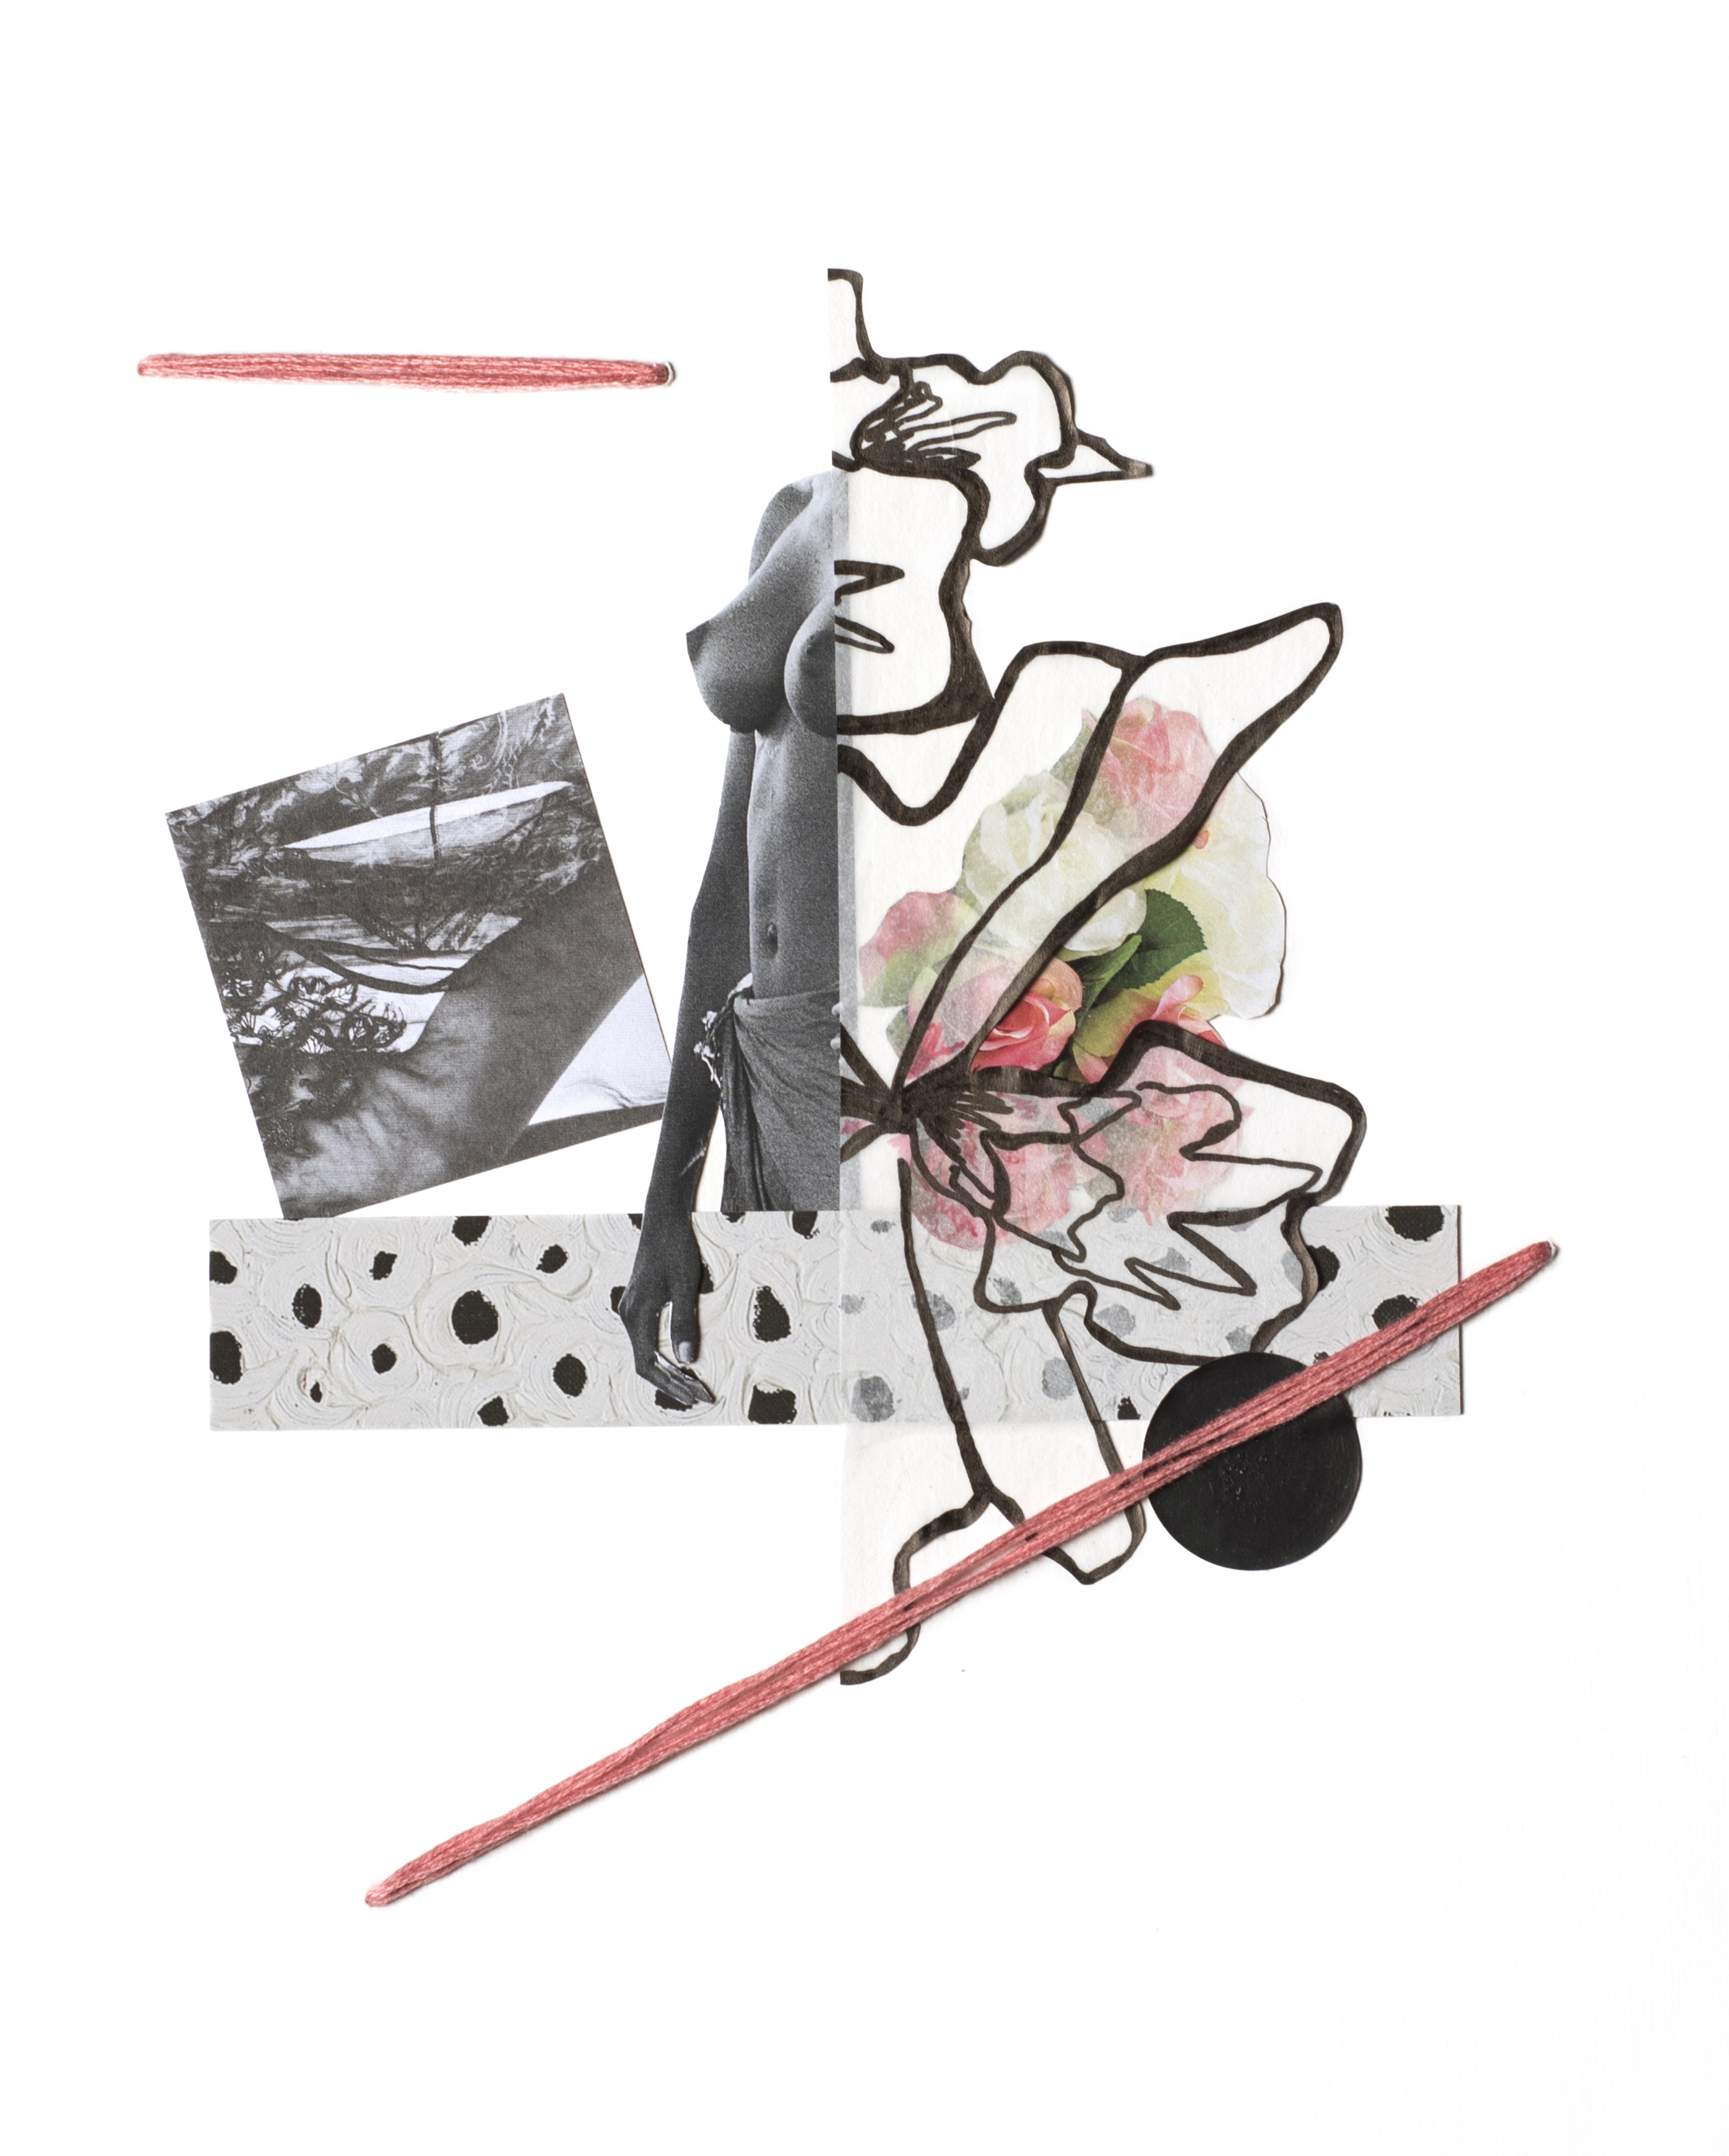 Woman Study 070417-1 , 2017 Ink, vellum, sticker, acrylic, auction catalog, magazine, and embroidery floss on archival mat board 10 x 8 inches